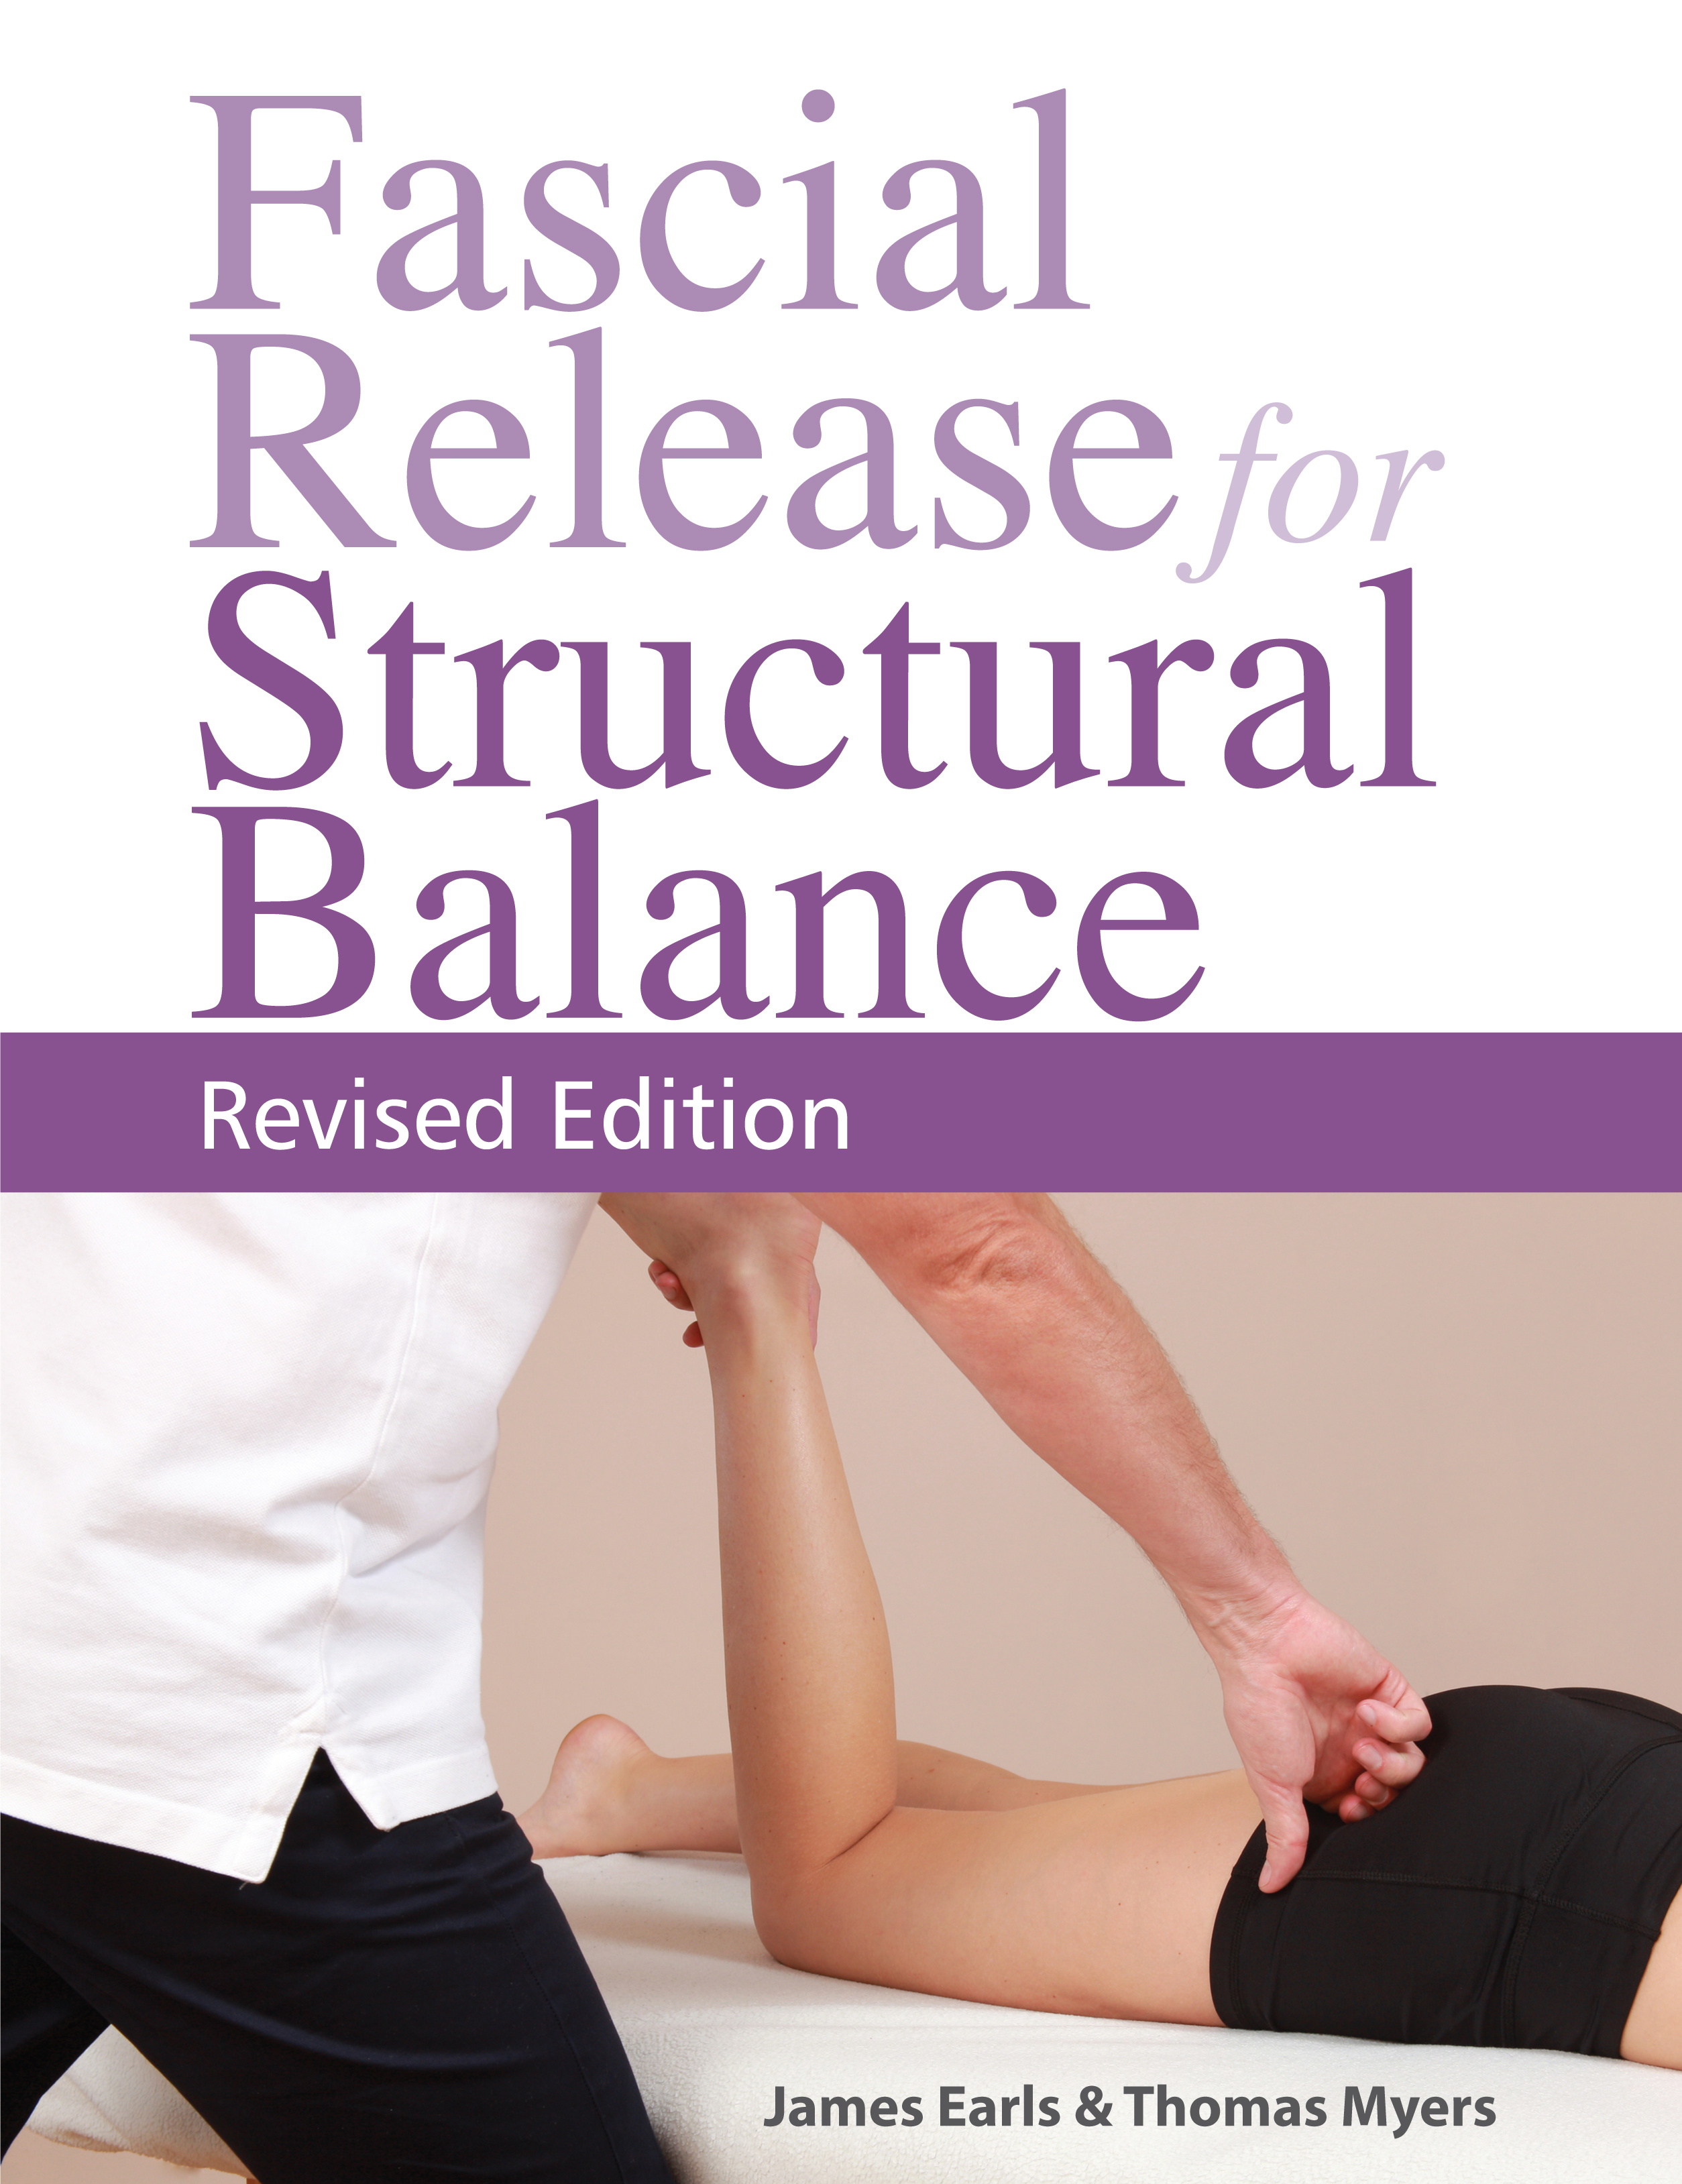 Fascial Release and Structural Balance new ed cover UK & US 15mm